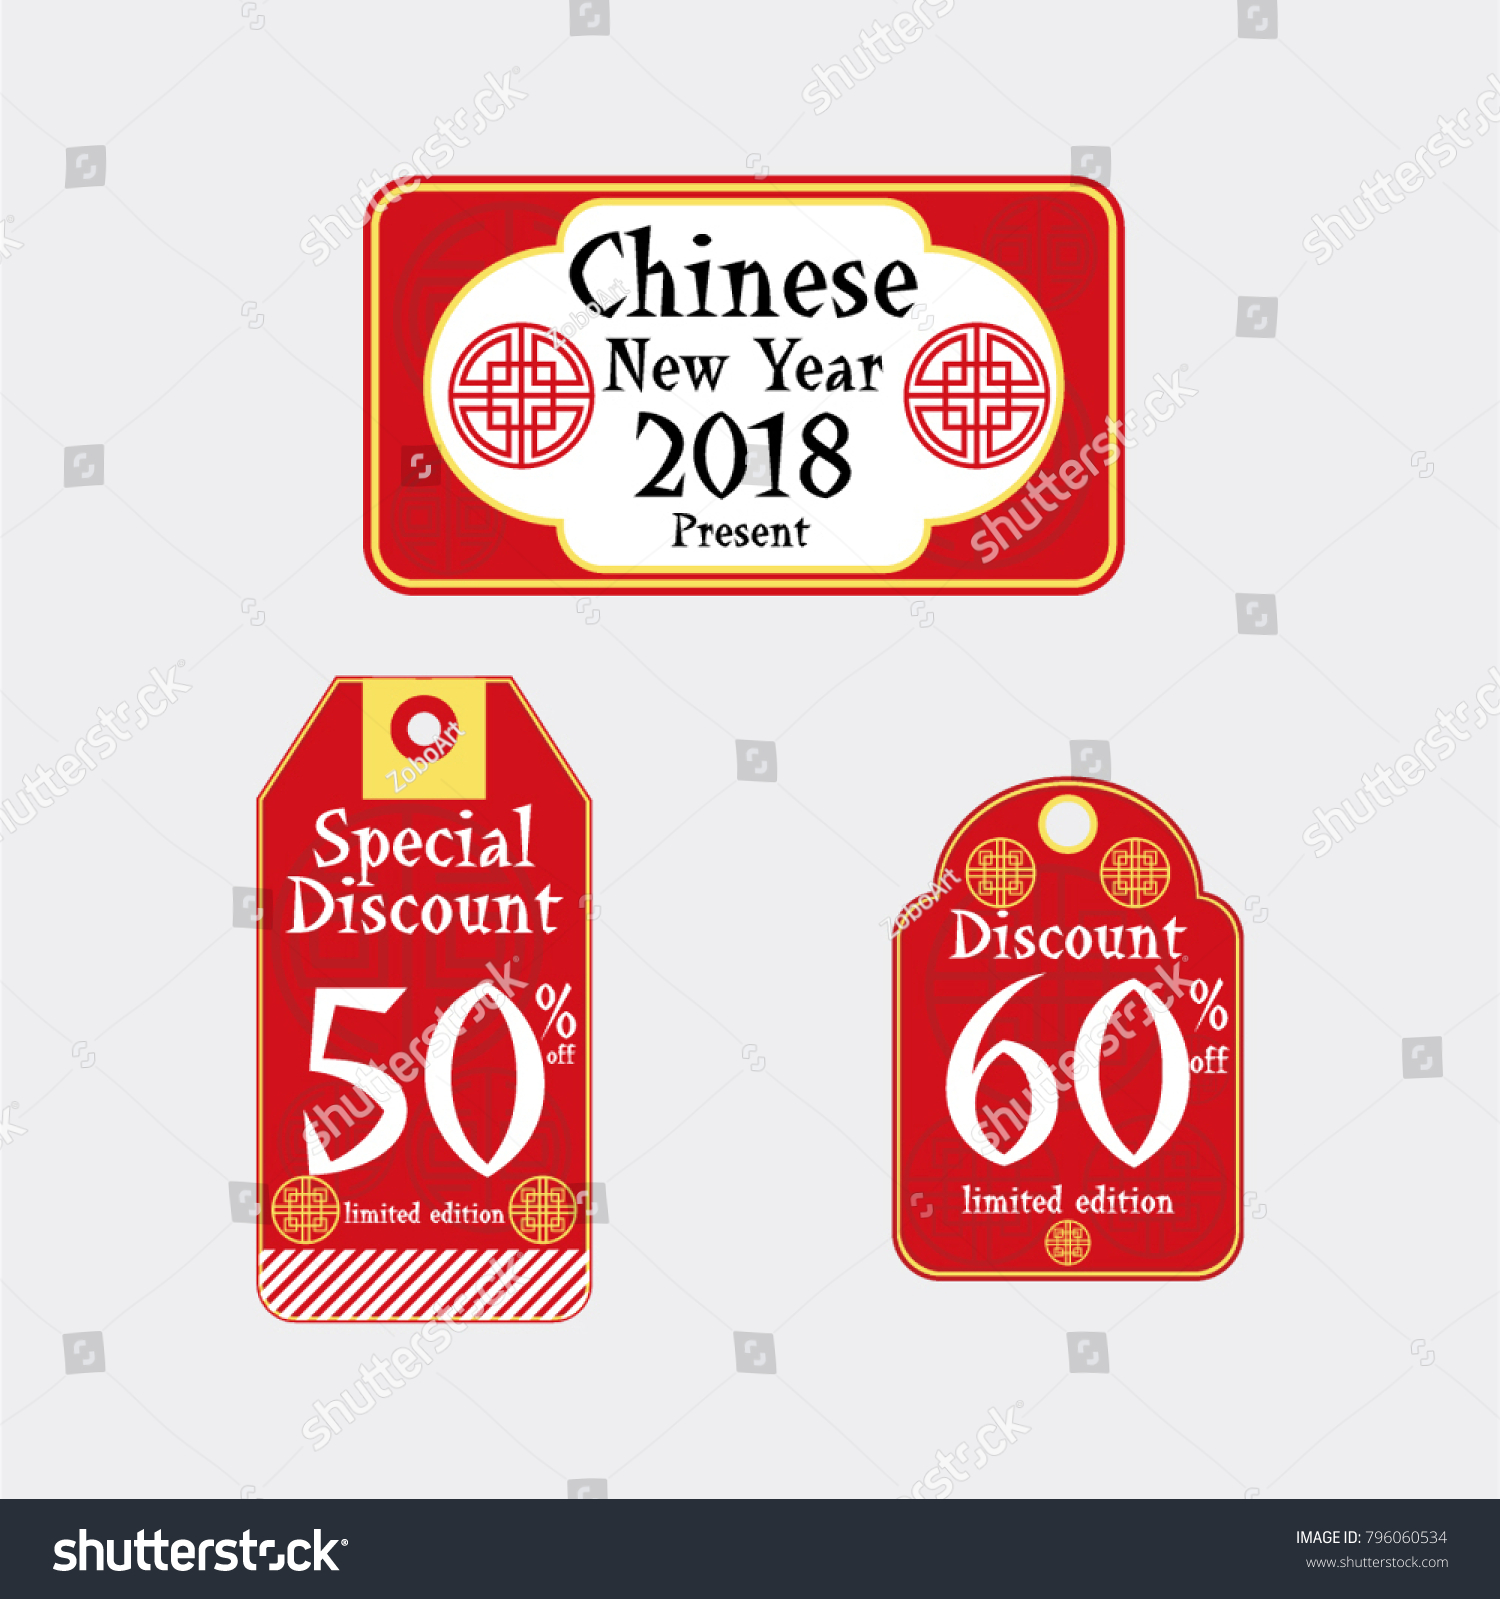 Chinese New Year Design Fortune Chinese Stock Vector Royalty Free